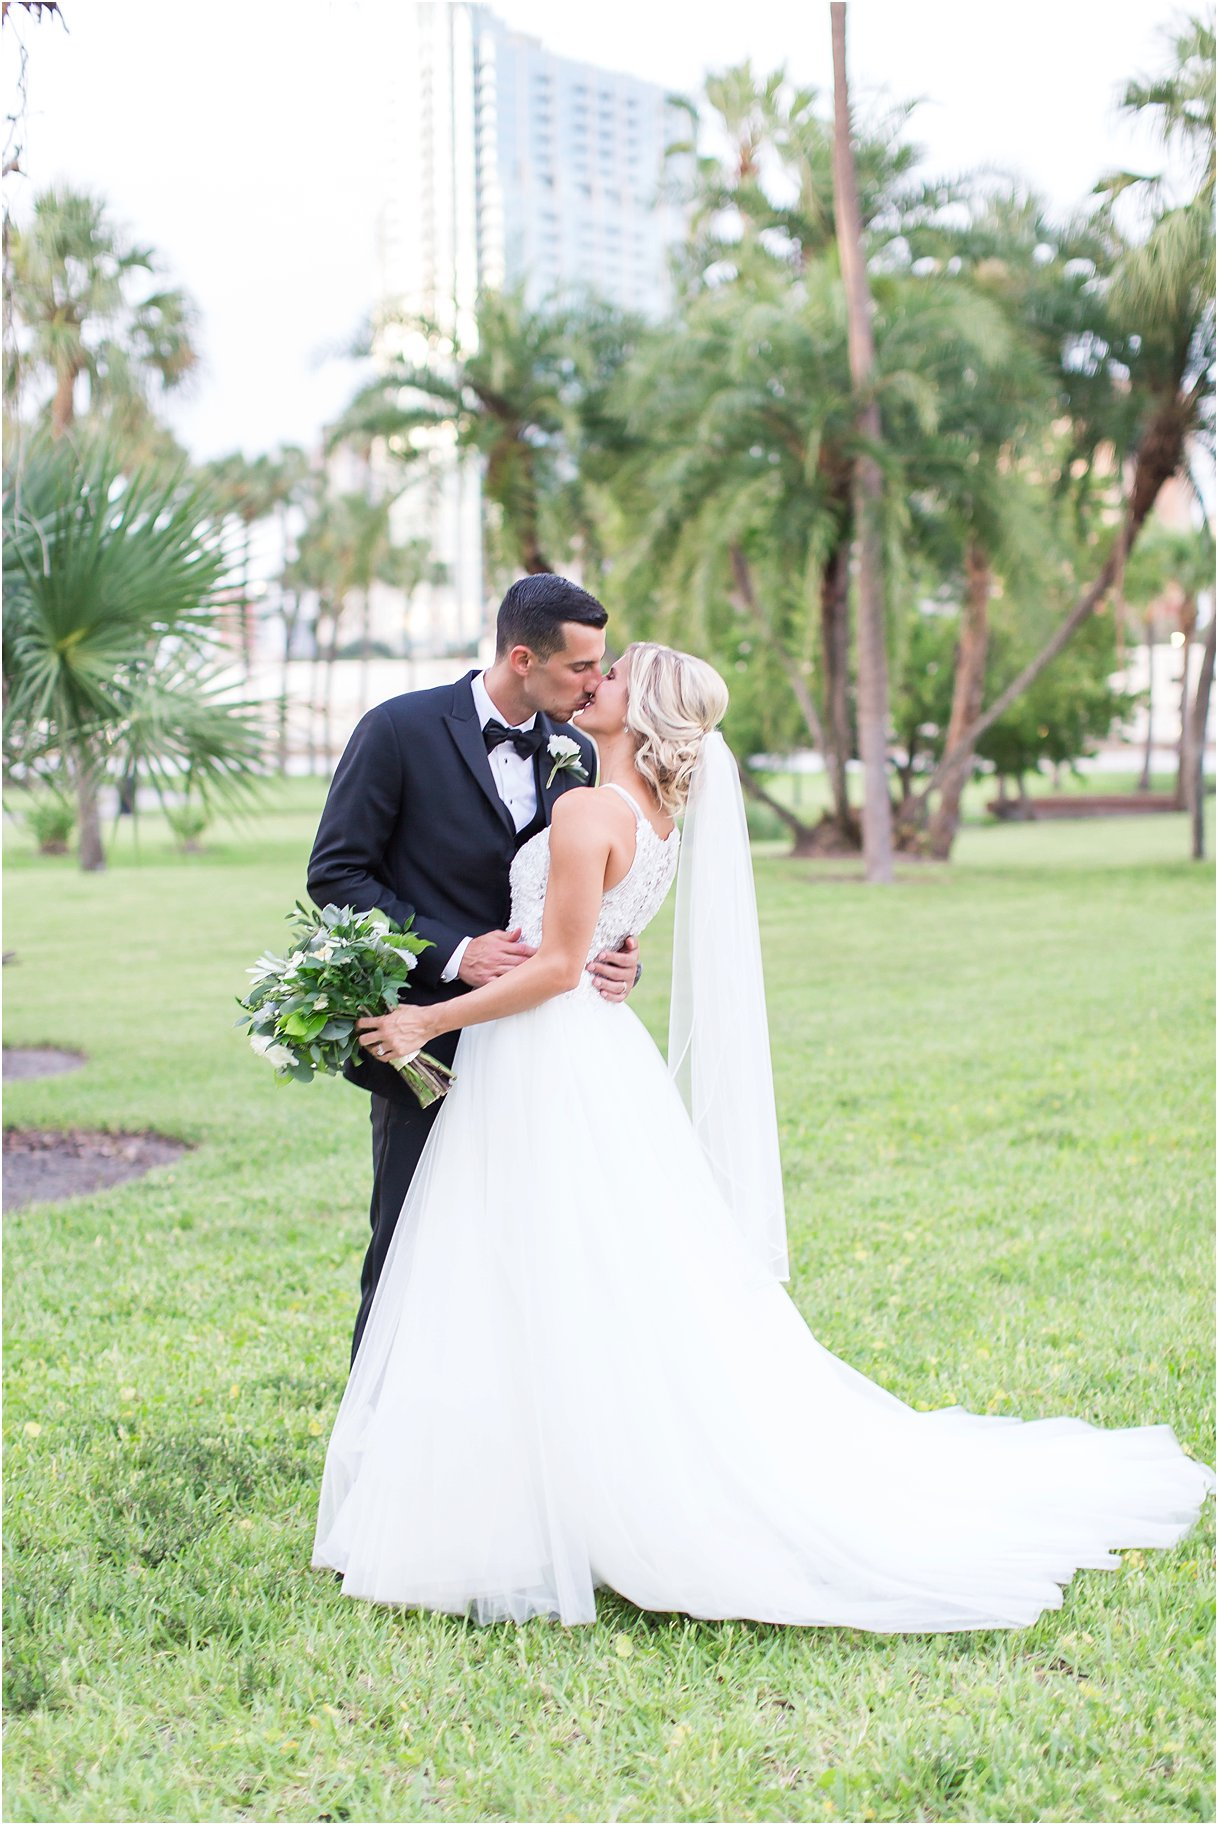 Formal Portraits at Tampa University Oxford Exchange Wedding Tampa PSJ Photography in Maggie Soterro Lisette and black tux and bow tie